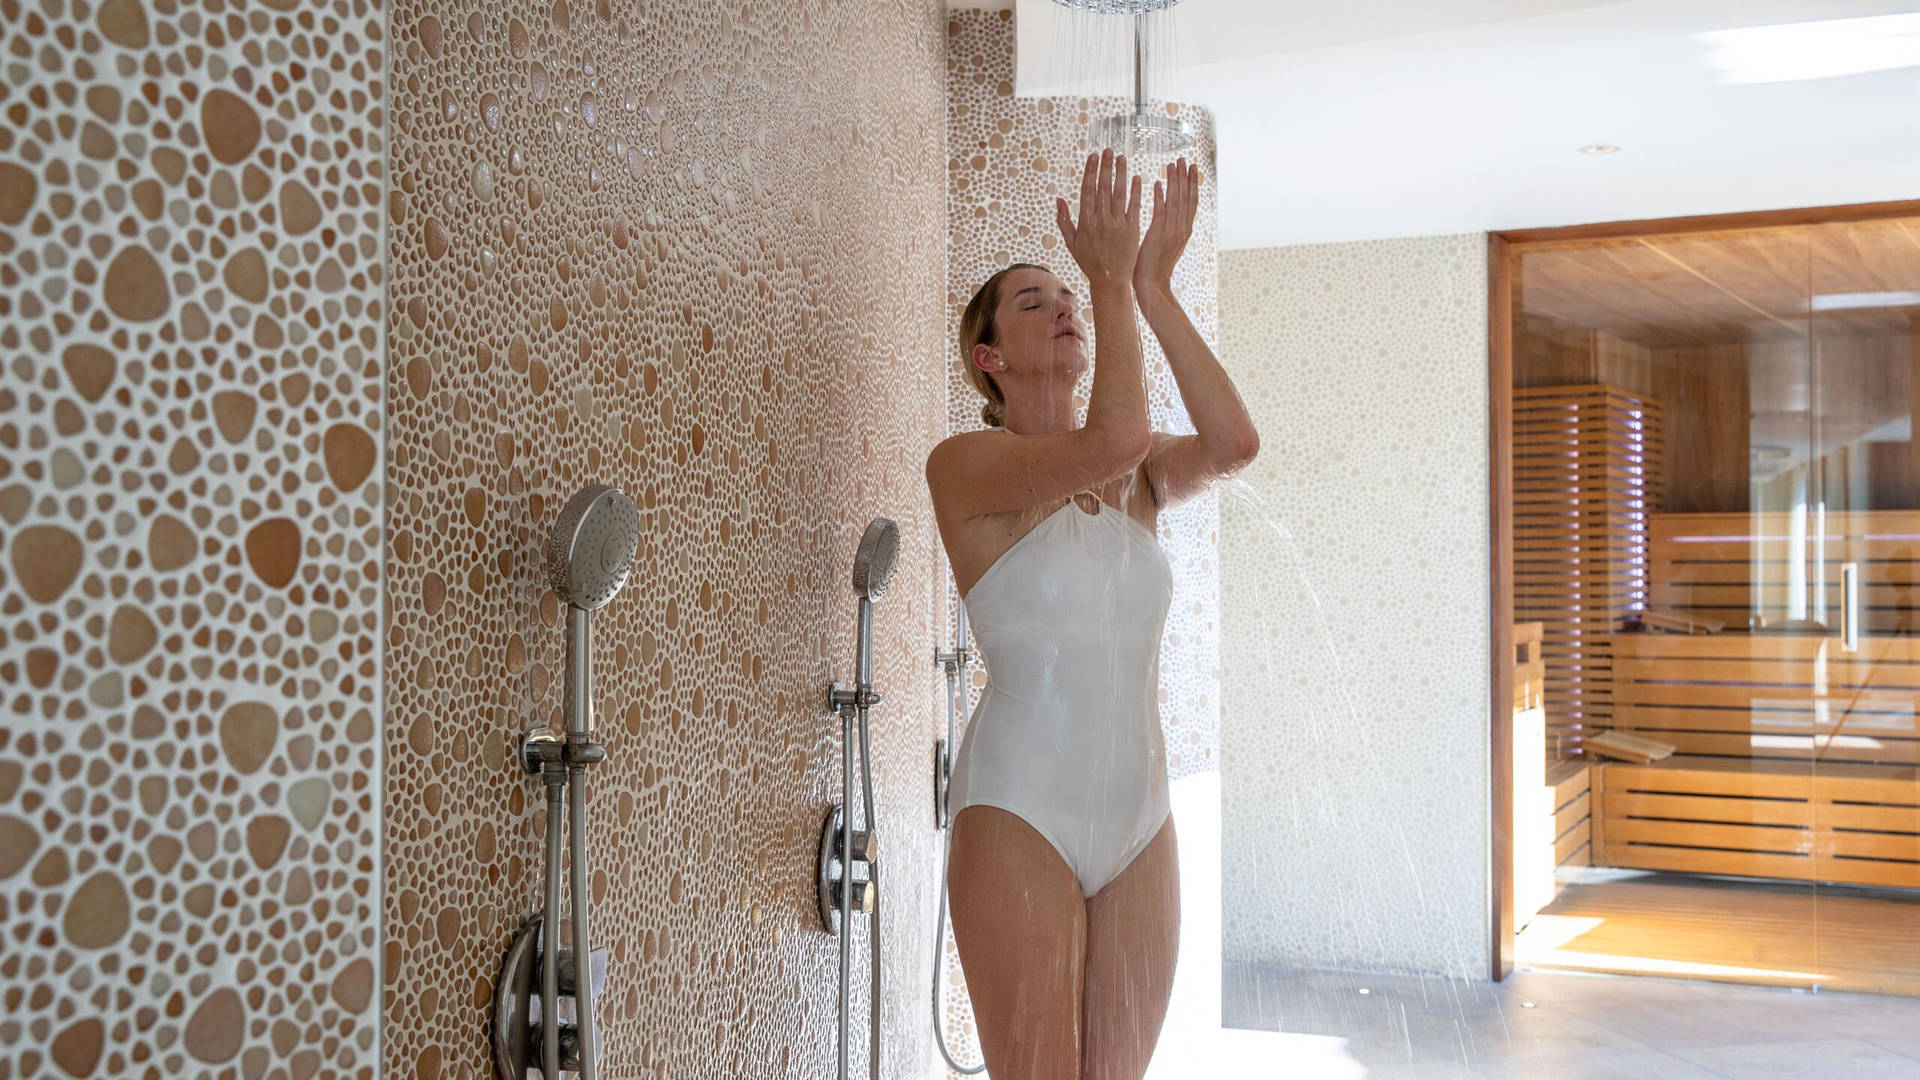 A person taking a shower at a spa